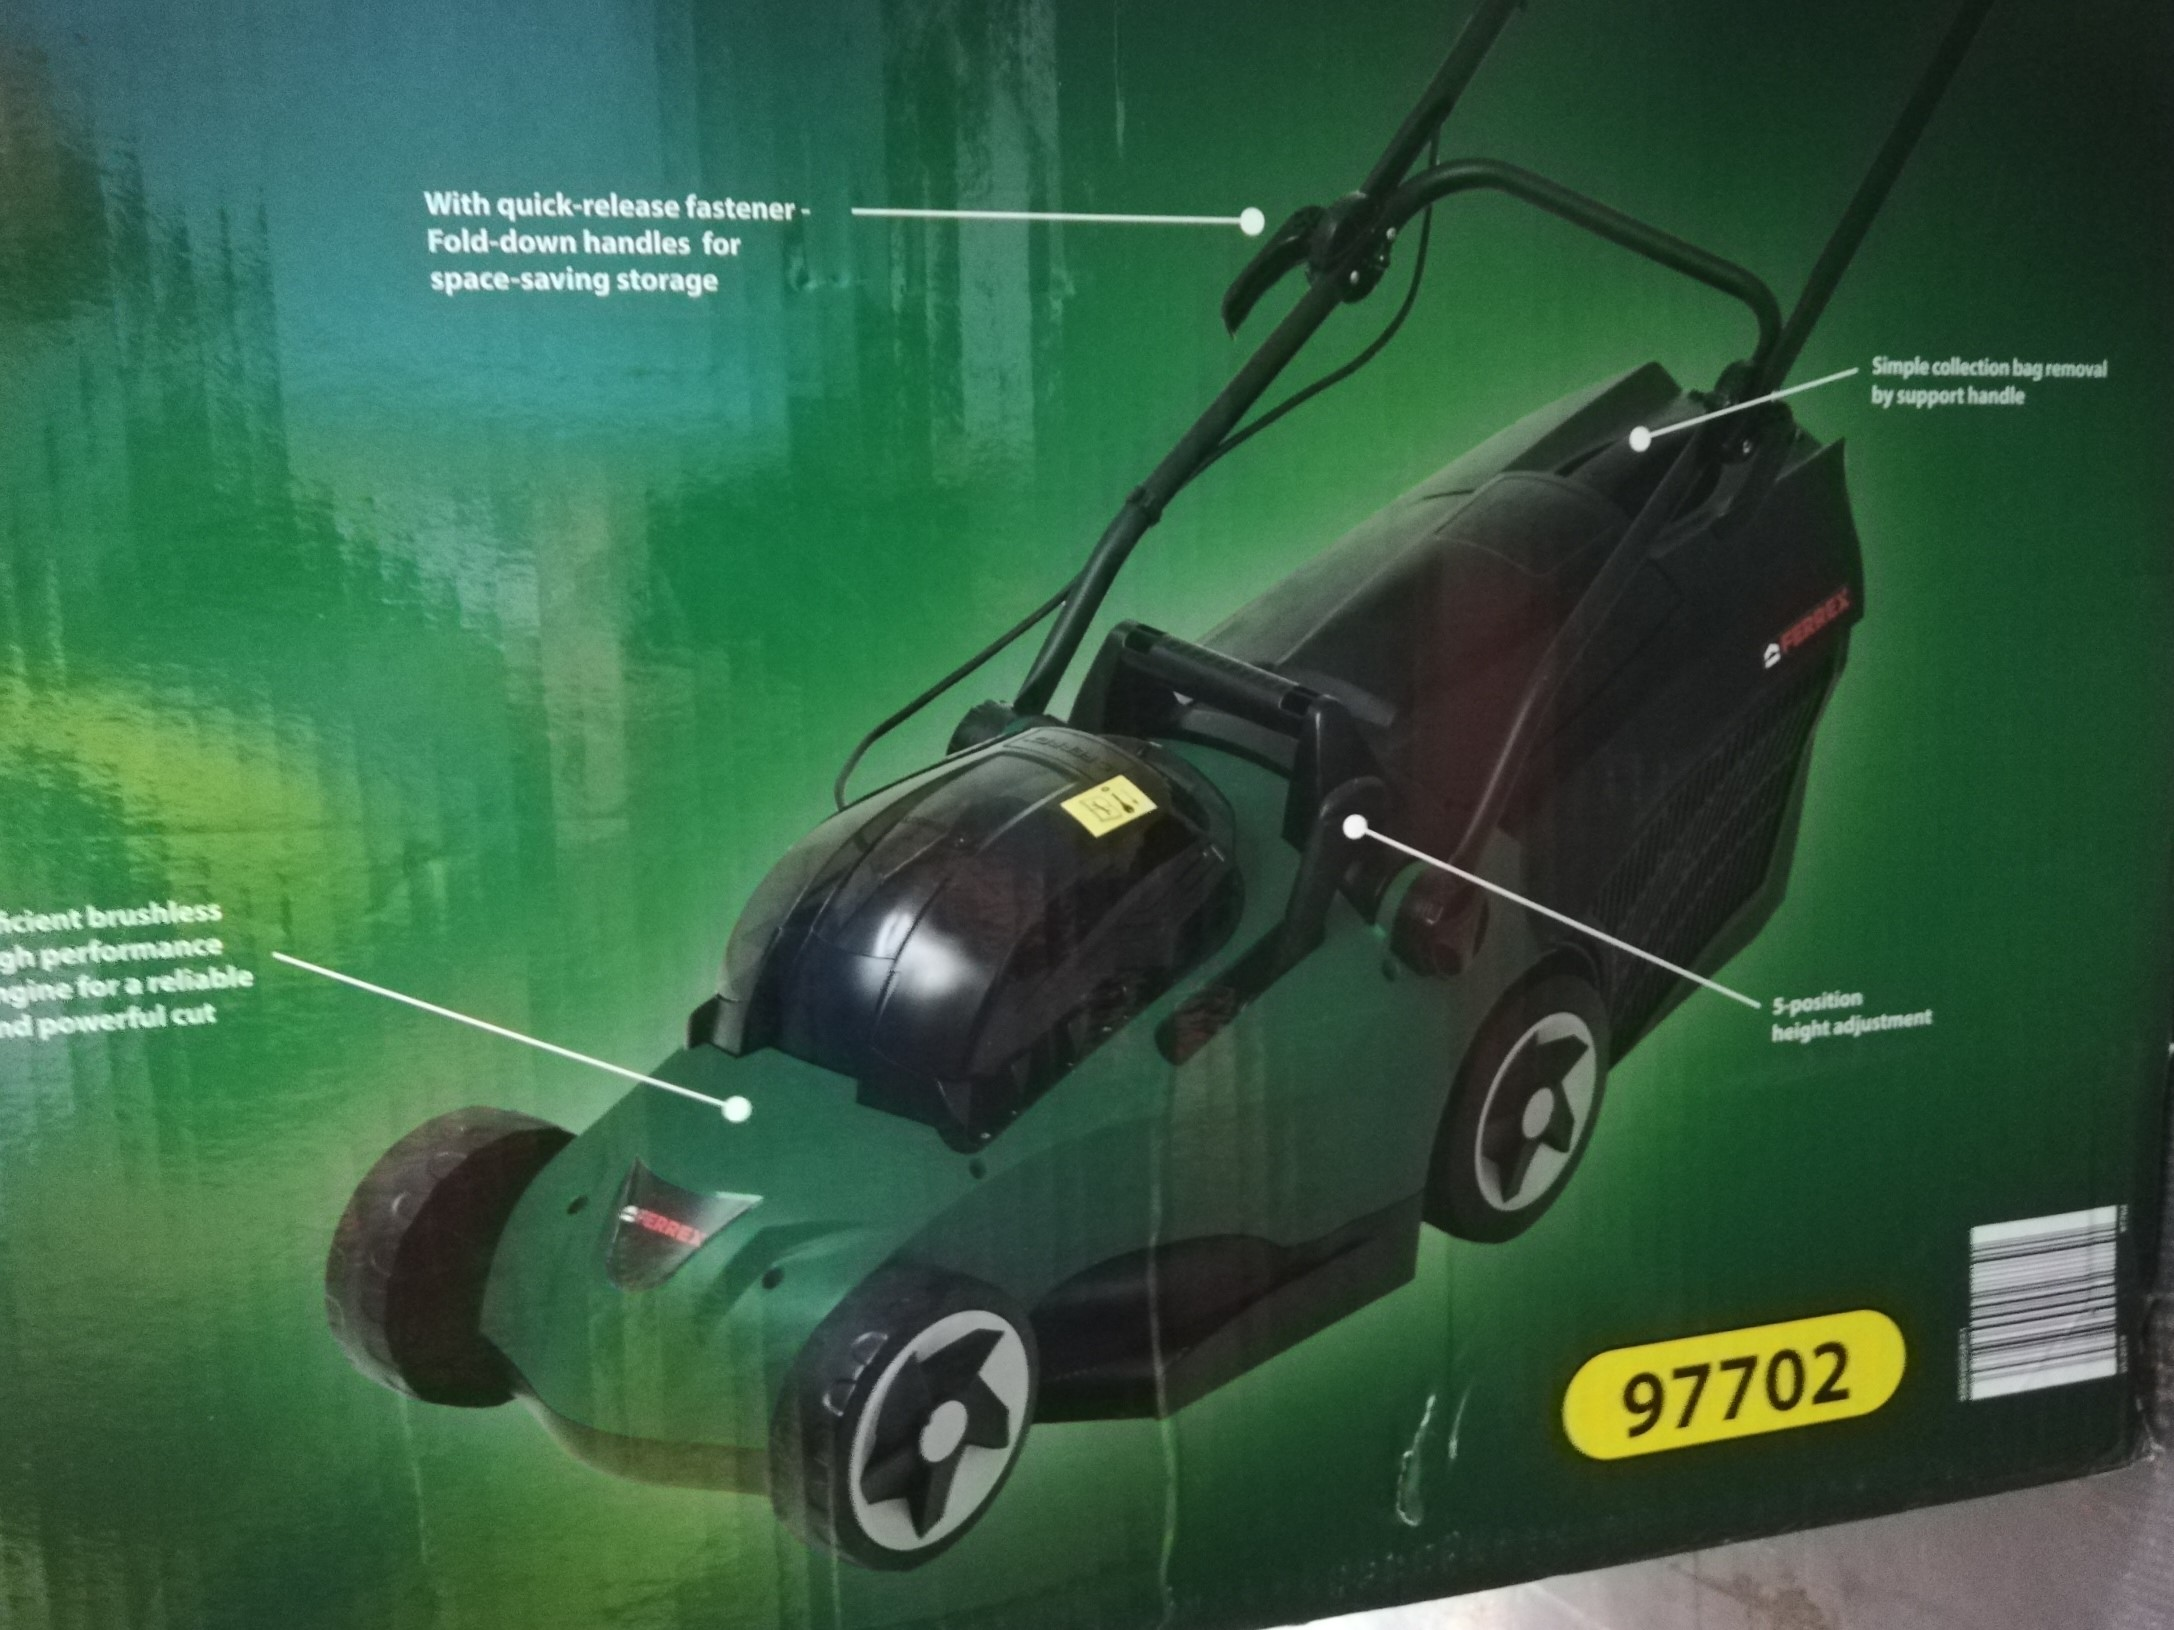 Lawnmower - Cordless - 40 V LI -ION (limited stock - NO BATTERY & CHARGER INCLUDED)